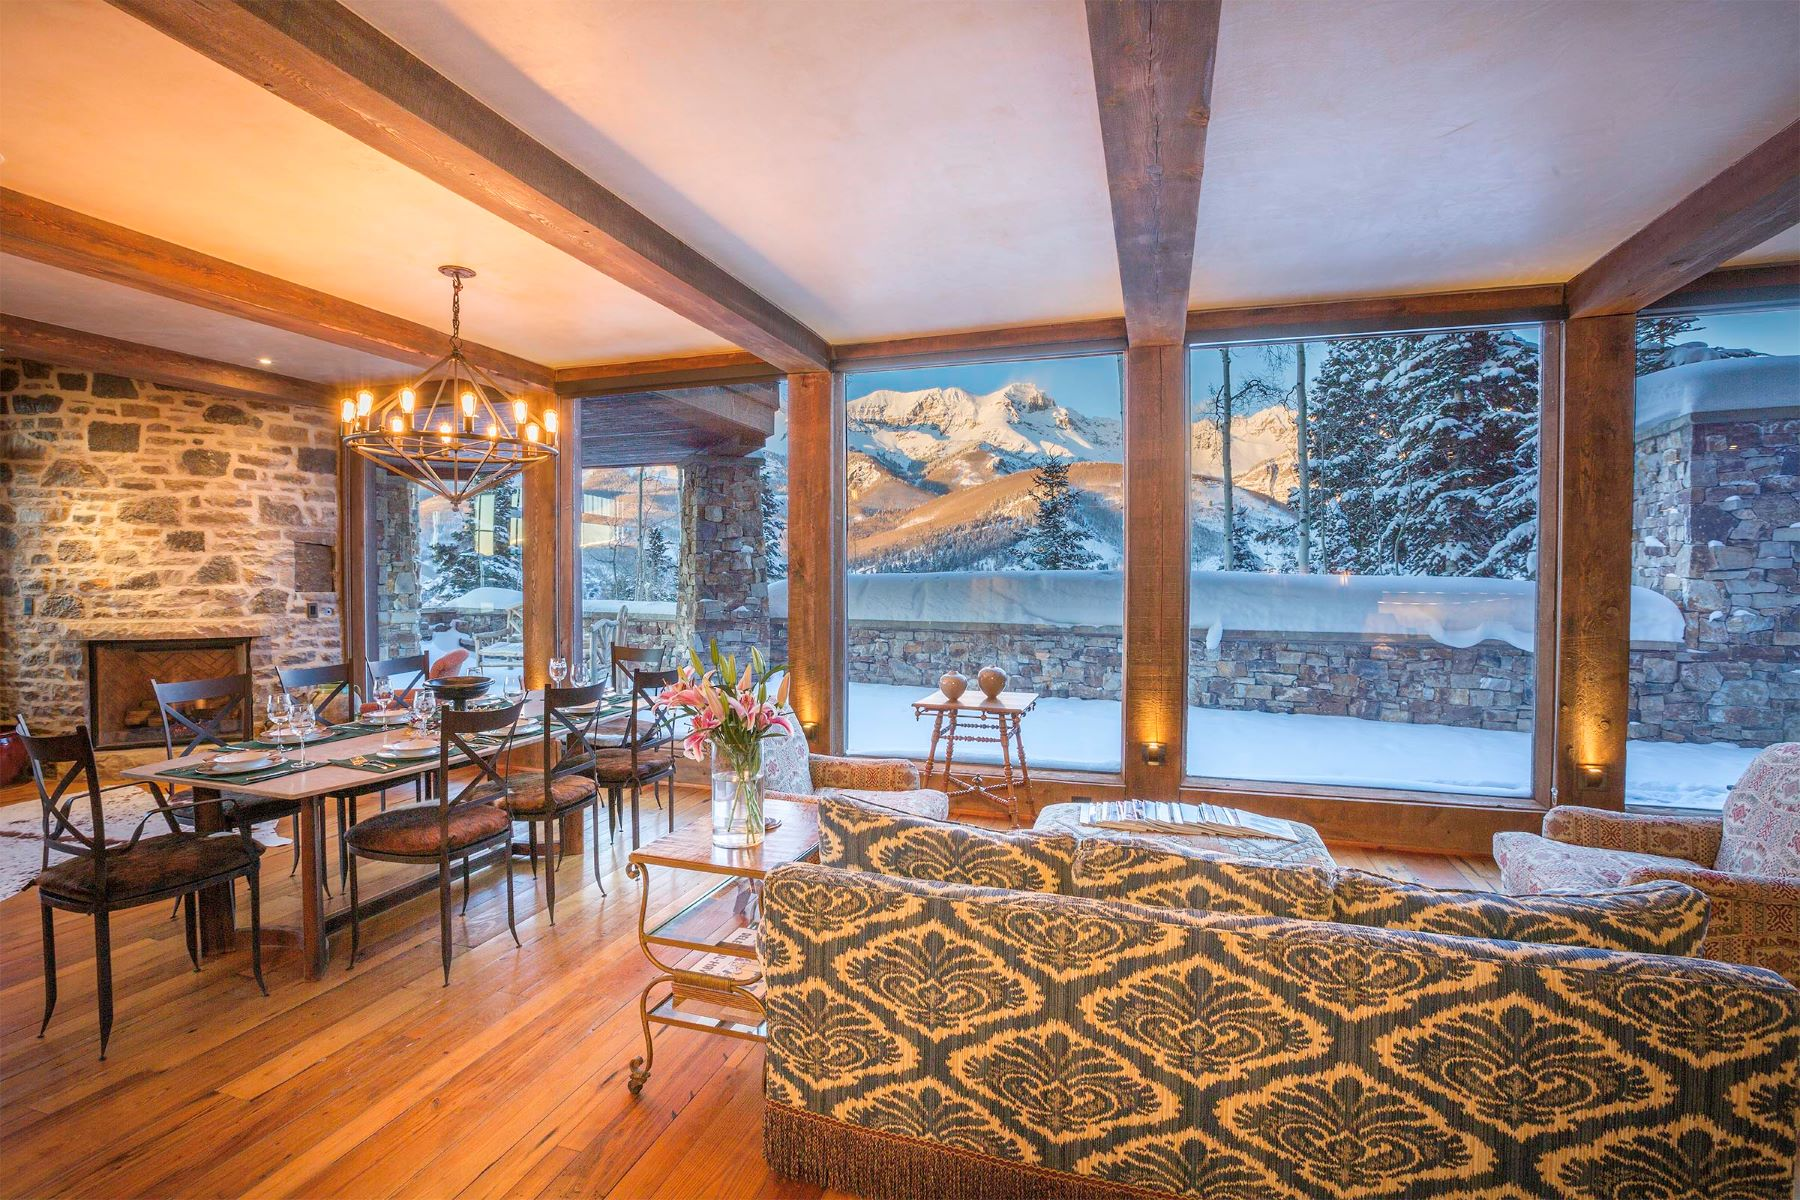 Condominium for Sale at See Forever B101 145 Sunny Ridge Place, Unit B101 Telluride, Colorado, 81435 United States